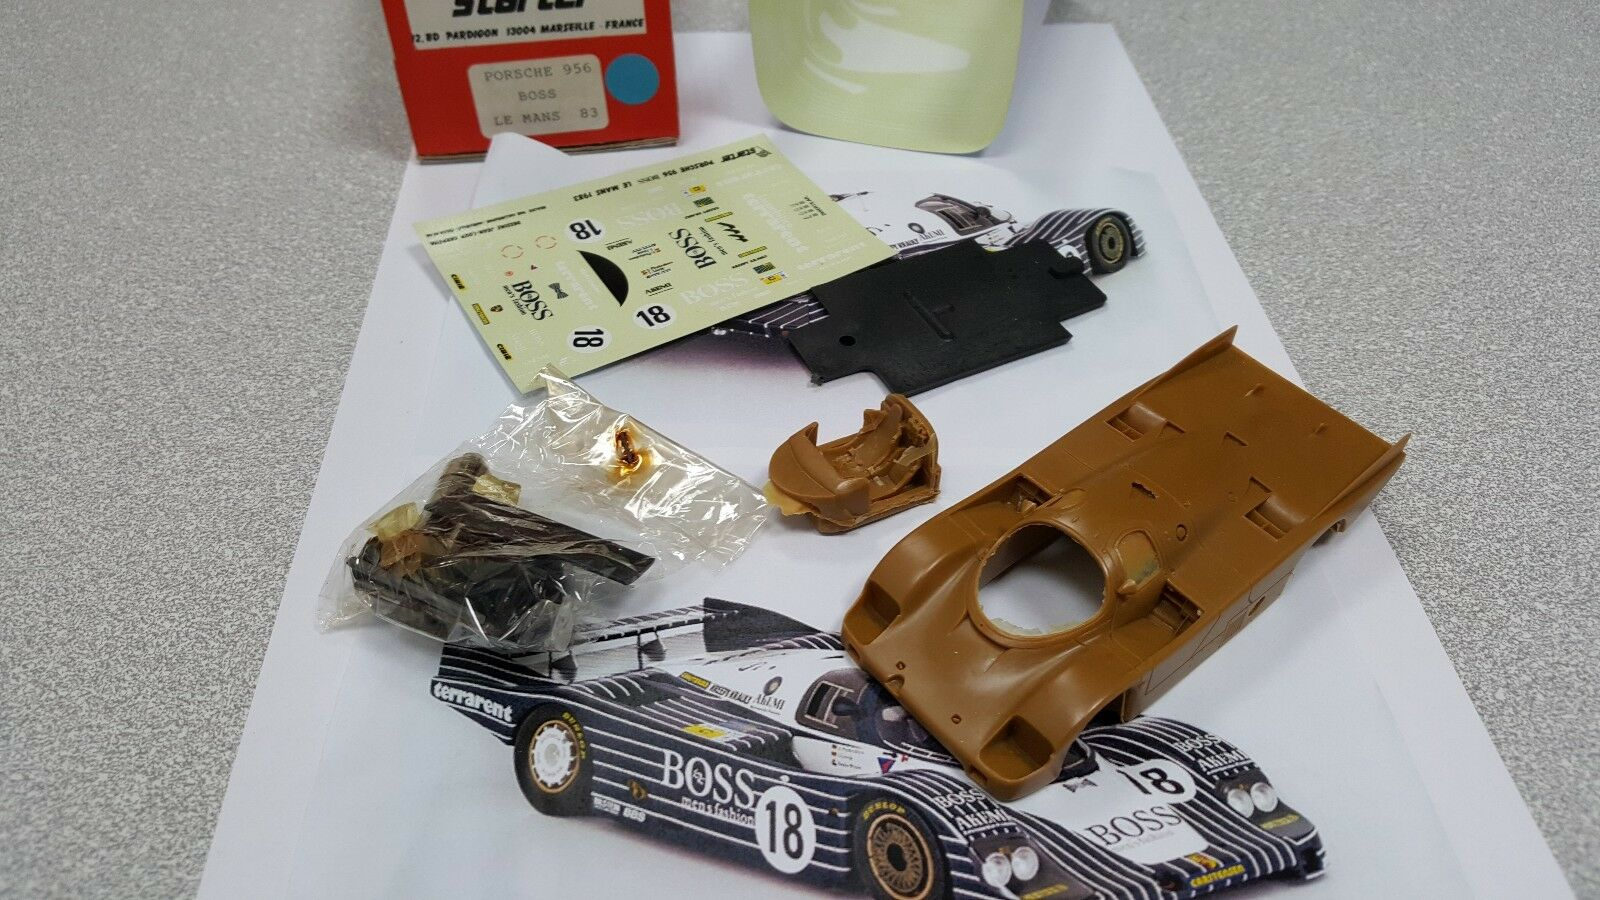 Kit Porsche 956 Boss  18 Le Mans 1983 - Starter Models kit 1 43